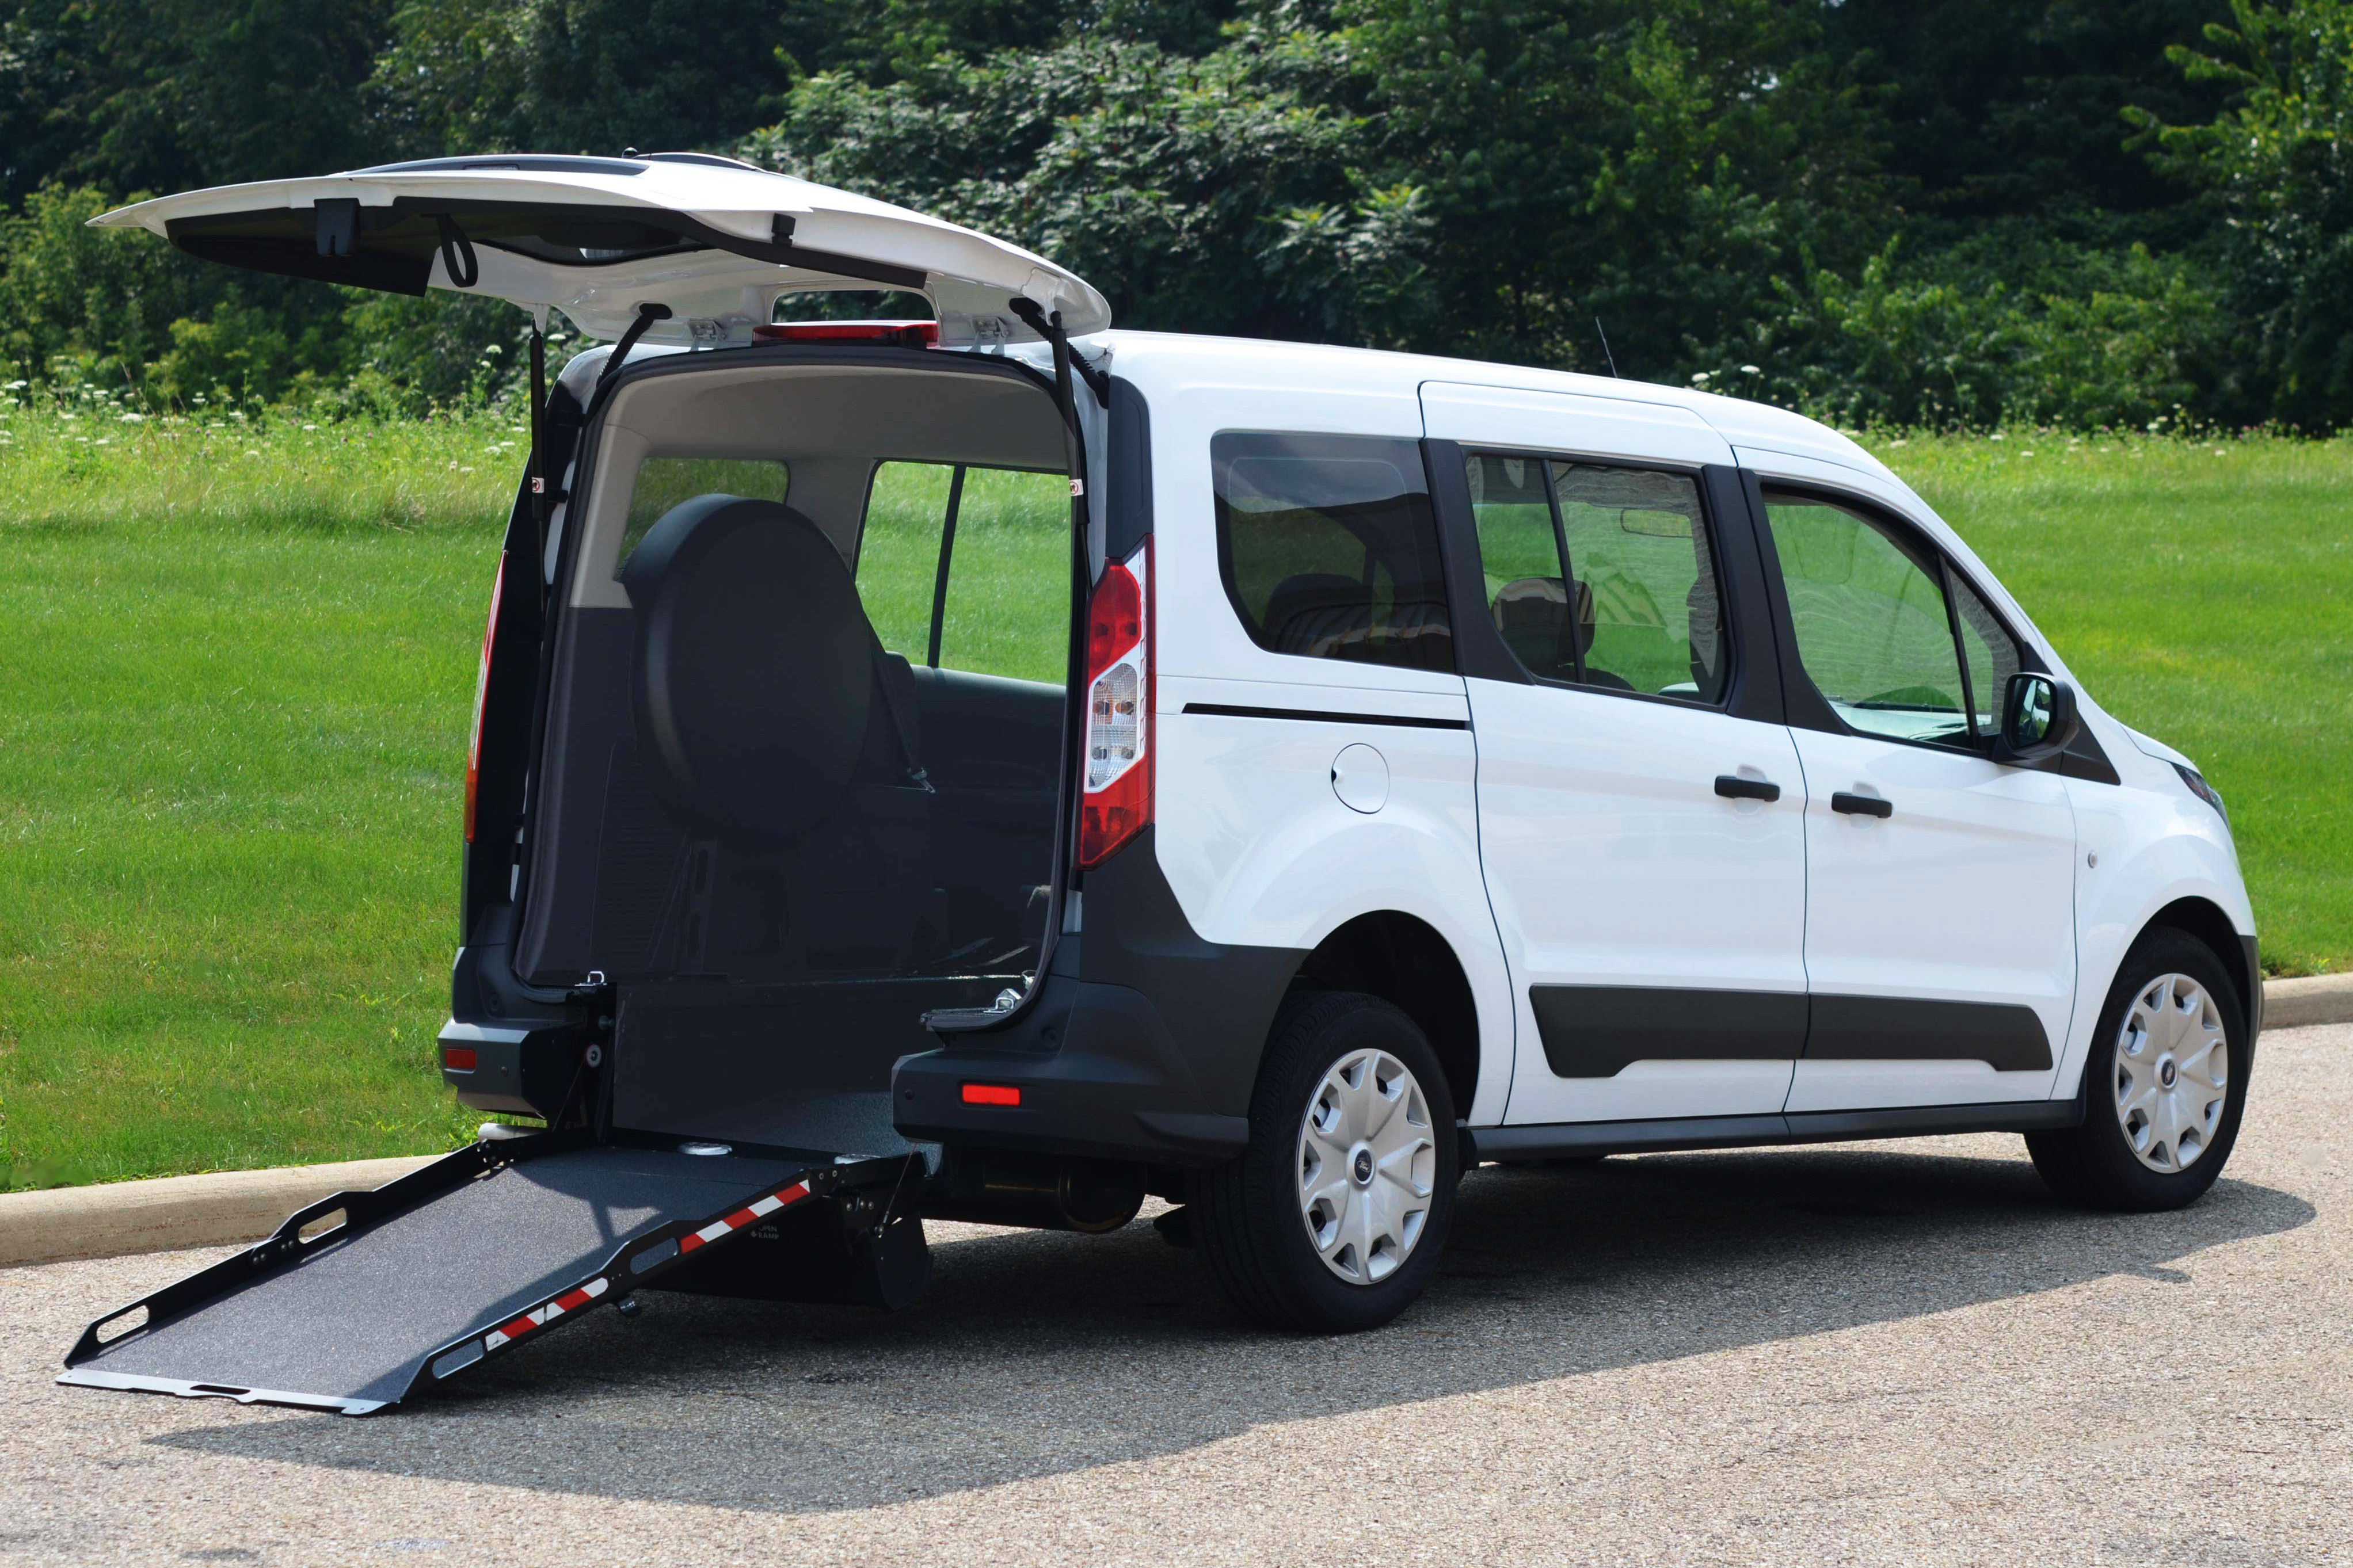 Ford Transit Home >> Merger Between MobilityWorks and HASCO Medical, Inc. Completed